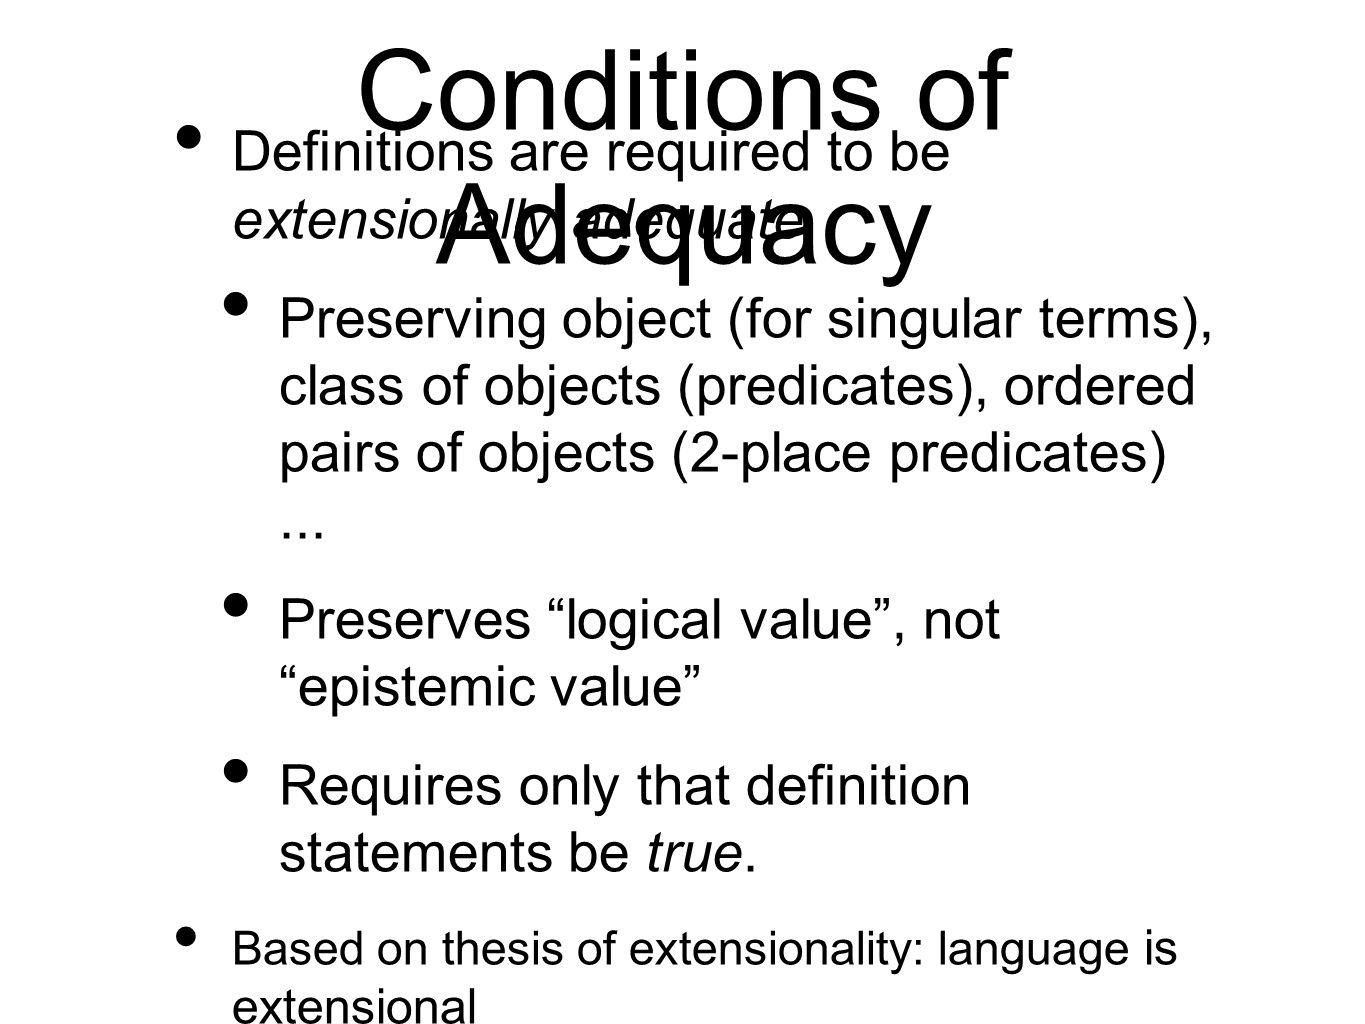 Conditions of Adequacy Definitions are required to be extensionally adequate Preserving object (for singular terms), class of objects (predicates), ordered pairs of objects (2-place predicates)...